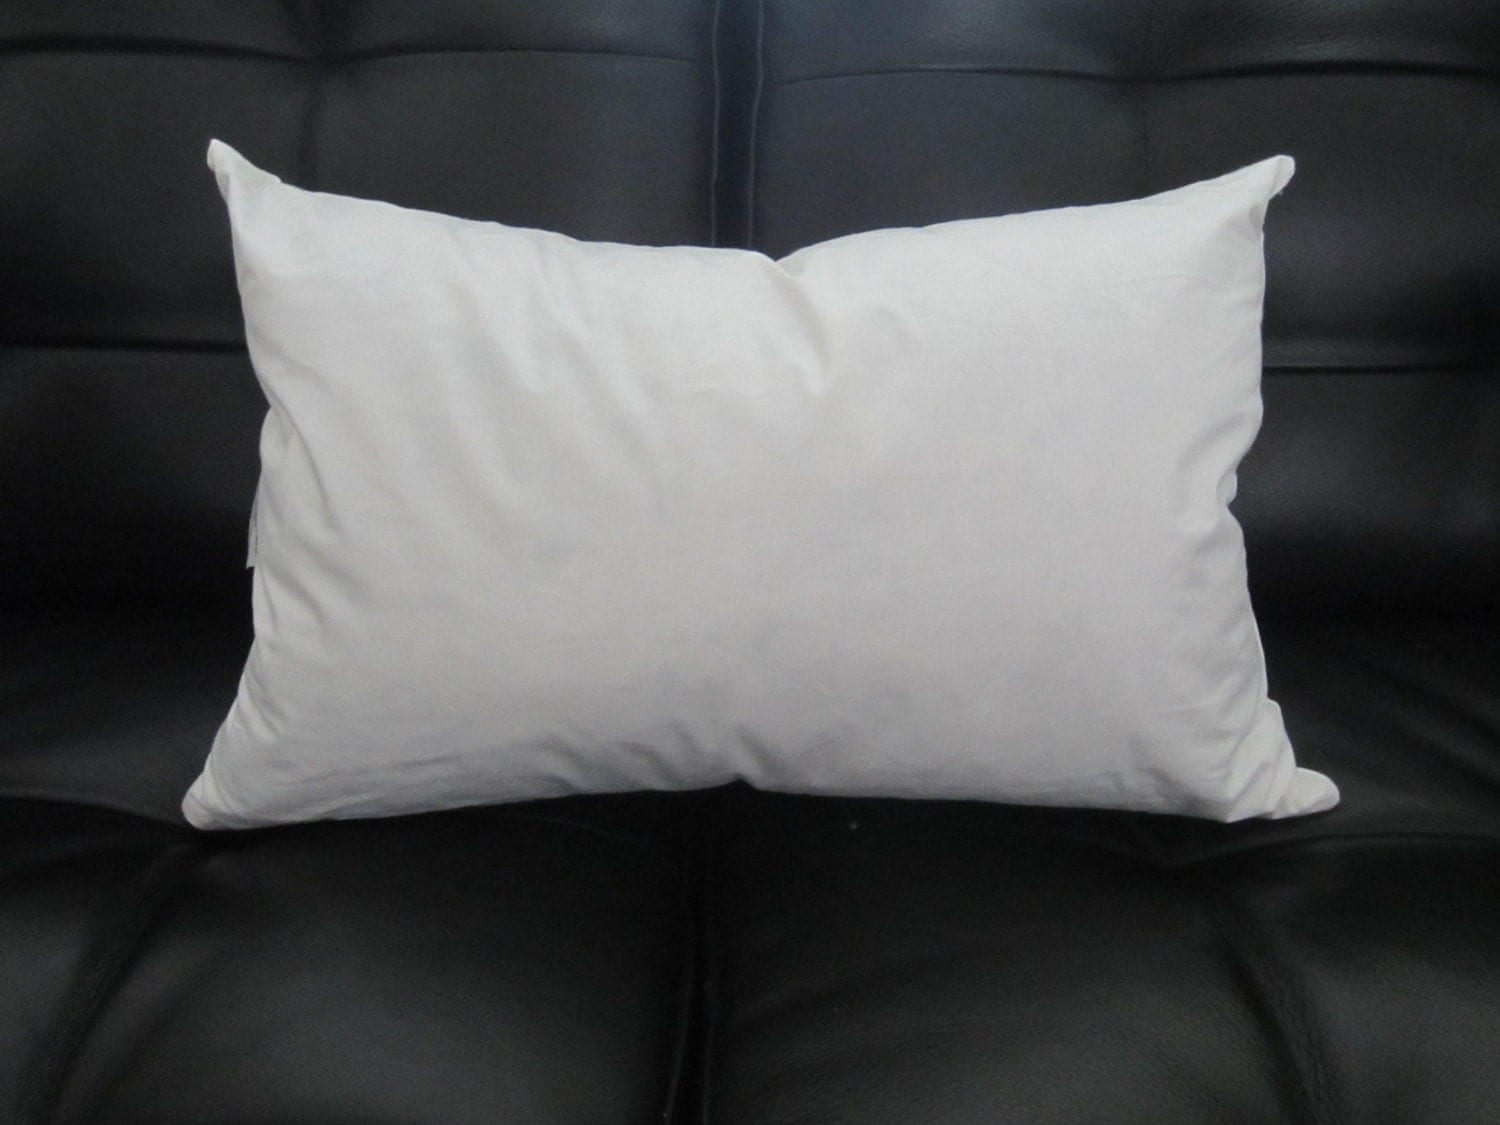 Throw Pillow Insert,Edow set of 2 Hypoallergenic Down Alternative Polyester Square Form Decorative Pillow, Cushion,Sham Stuffer,18 x 18 inches. by edow. $ $ 12 99 Prime. Only 1 left in stock - order soon. FREE Shipping on eligible orders. 4 out of 5 stars 8. See Size Options.